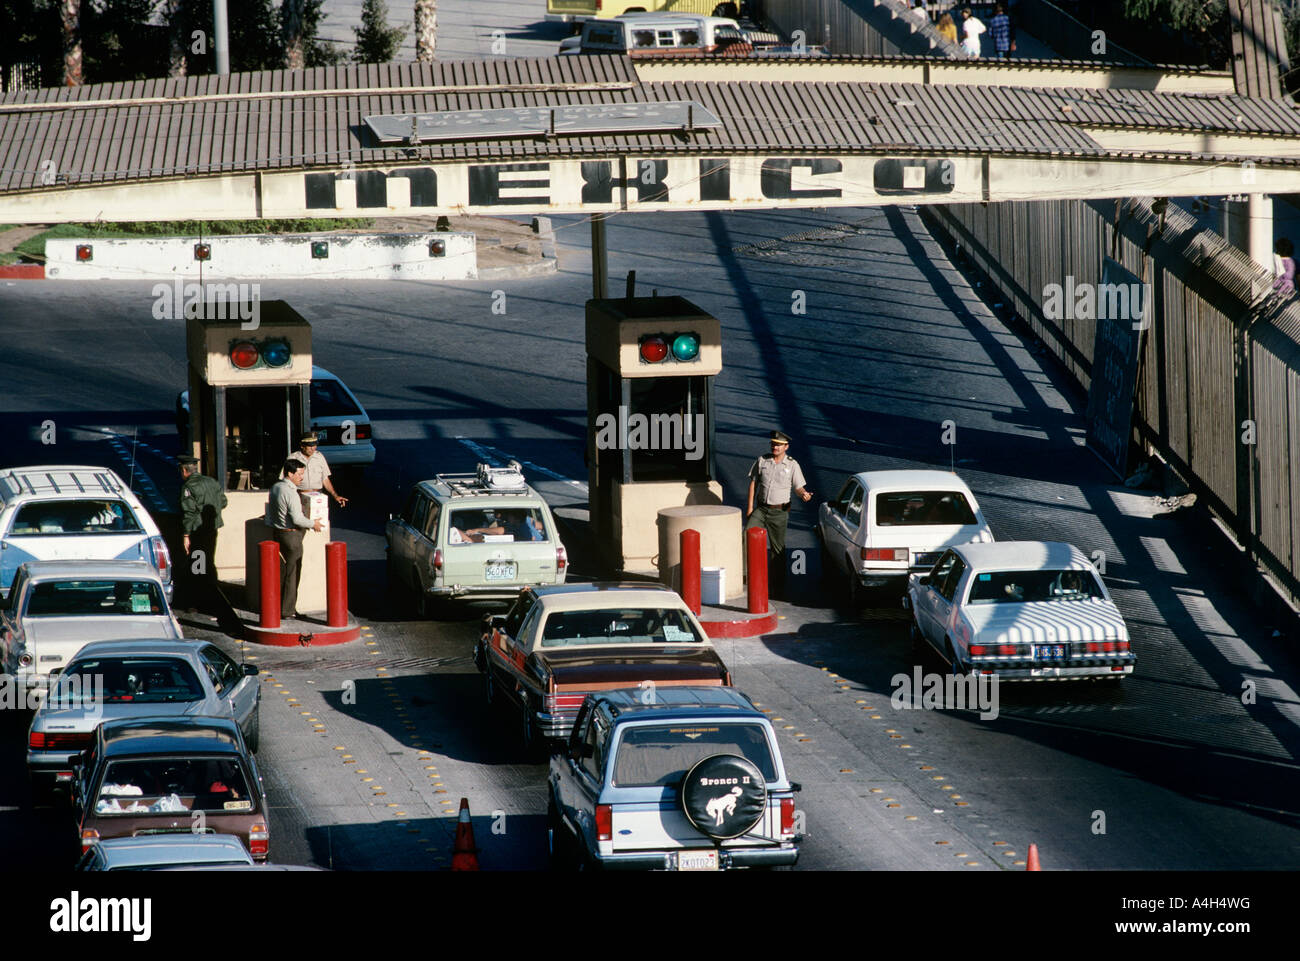 cars-entering-mexico-at-the-border-in-tijuana-in-the-1980s-A4H4WG.jpg